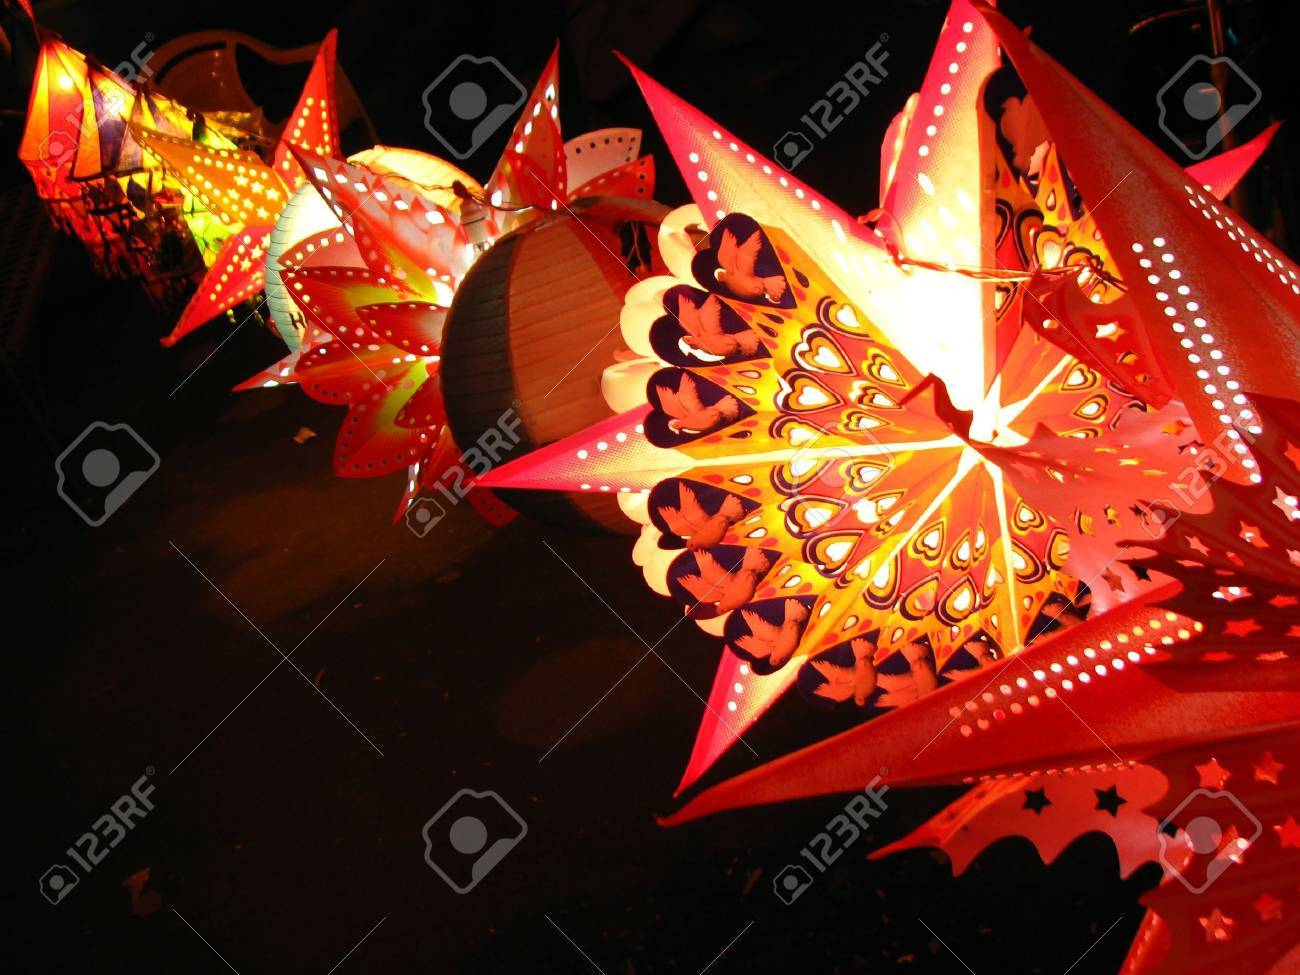 A backgorund with a view of a line of beautifully designed colorful lanterns (also locally called as skylanters) decoration, lit of the occasion of Diwali / Christmas festival in India. Stock Photo - 4722947